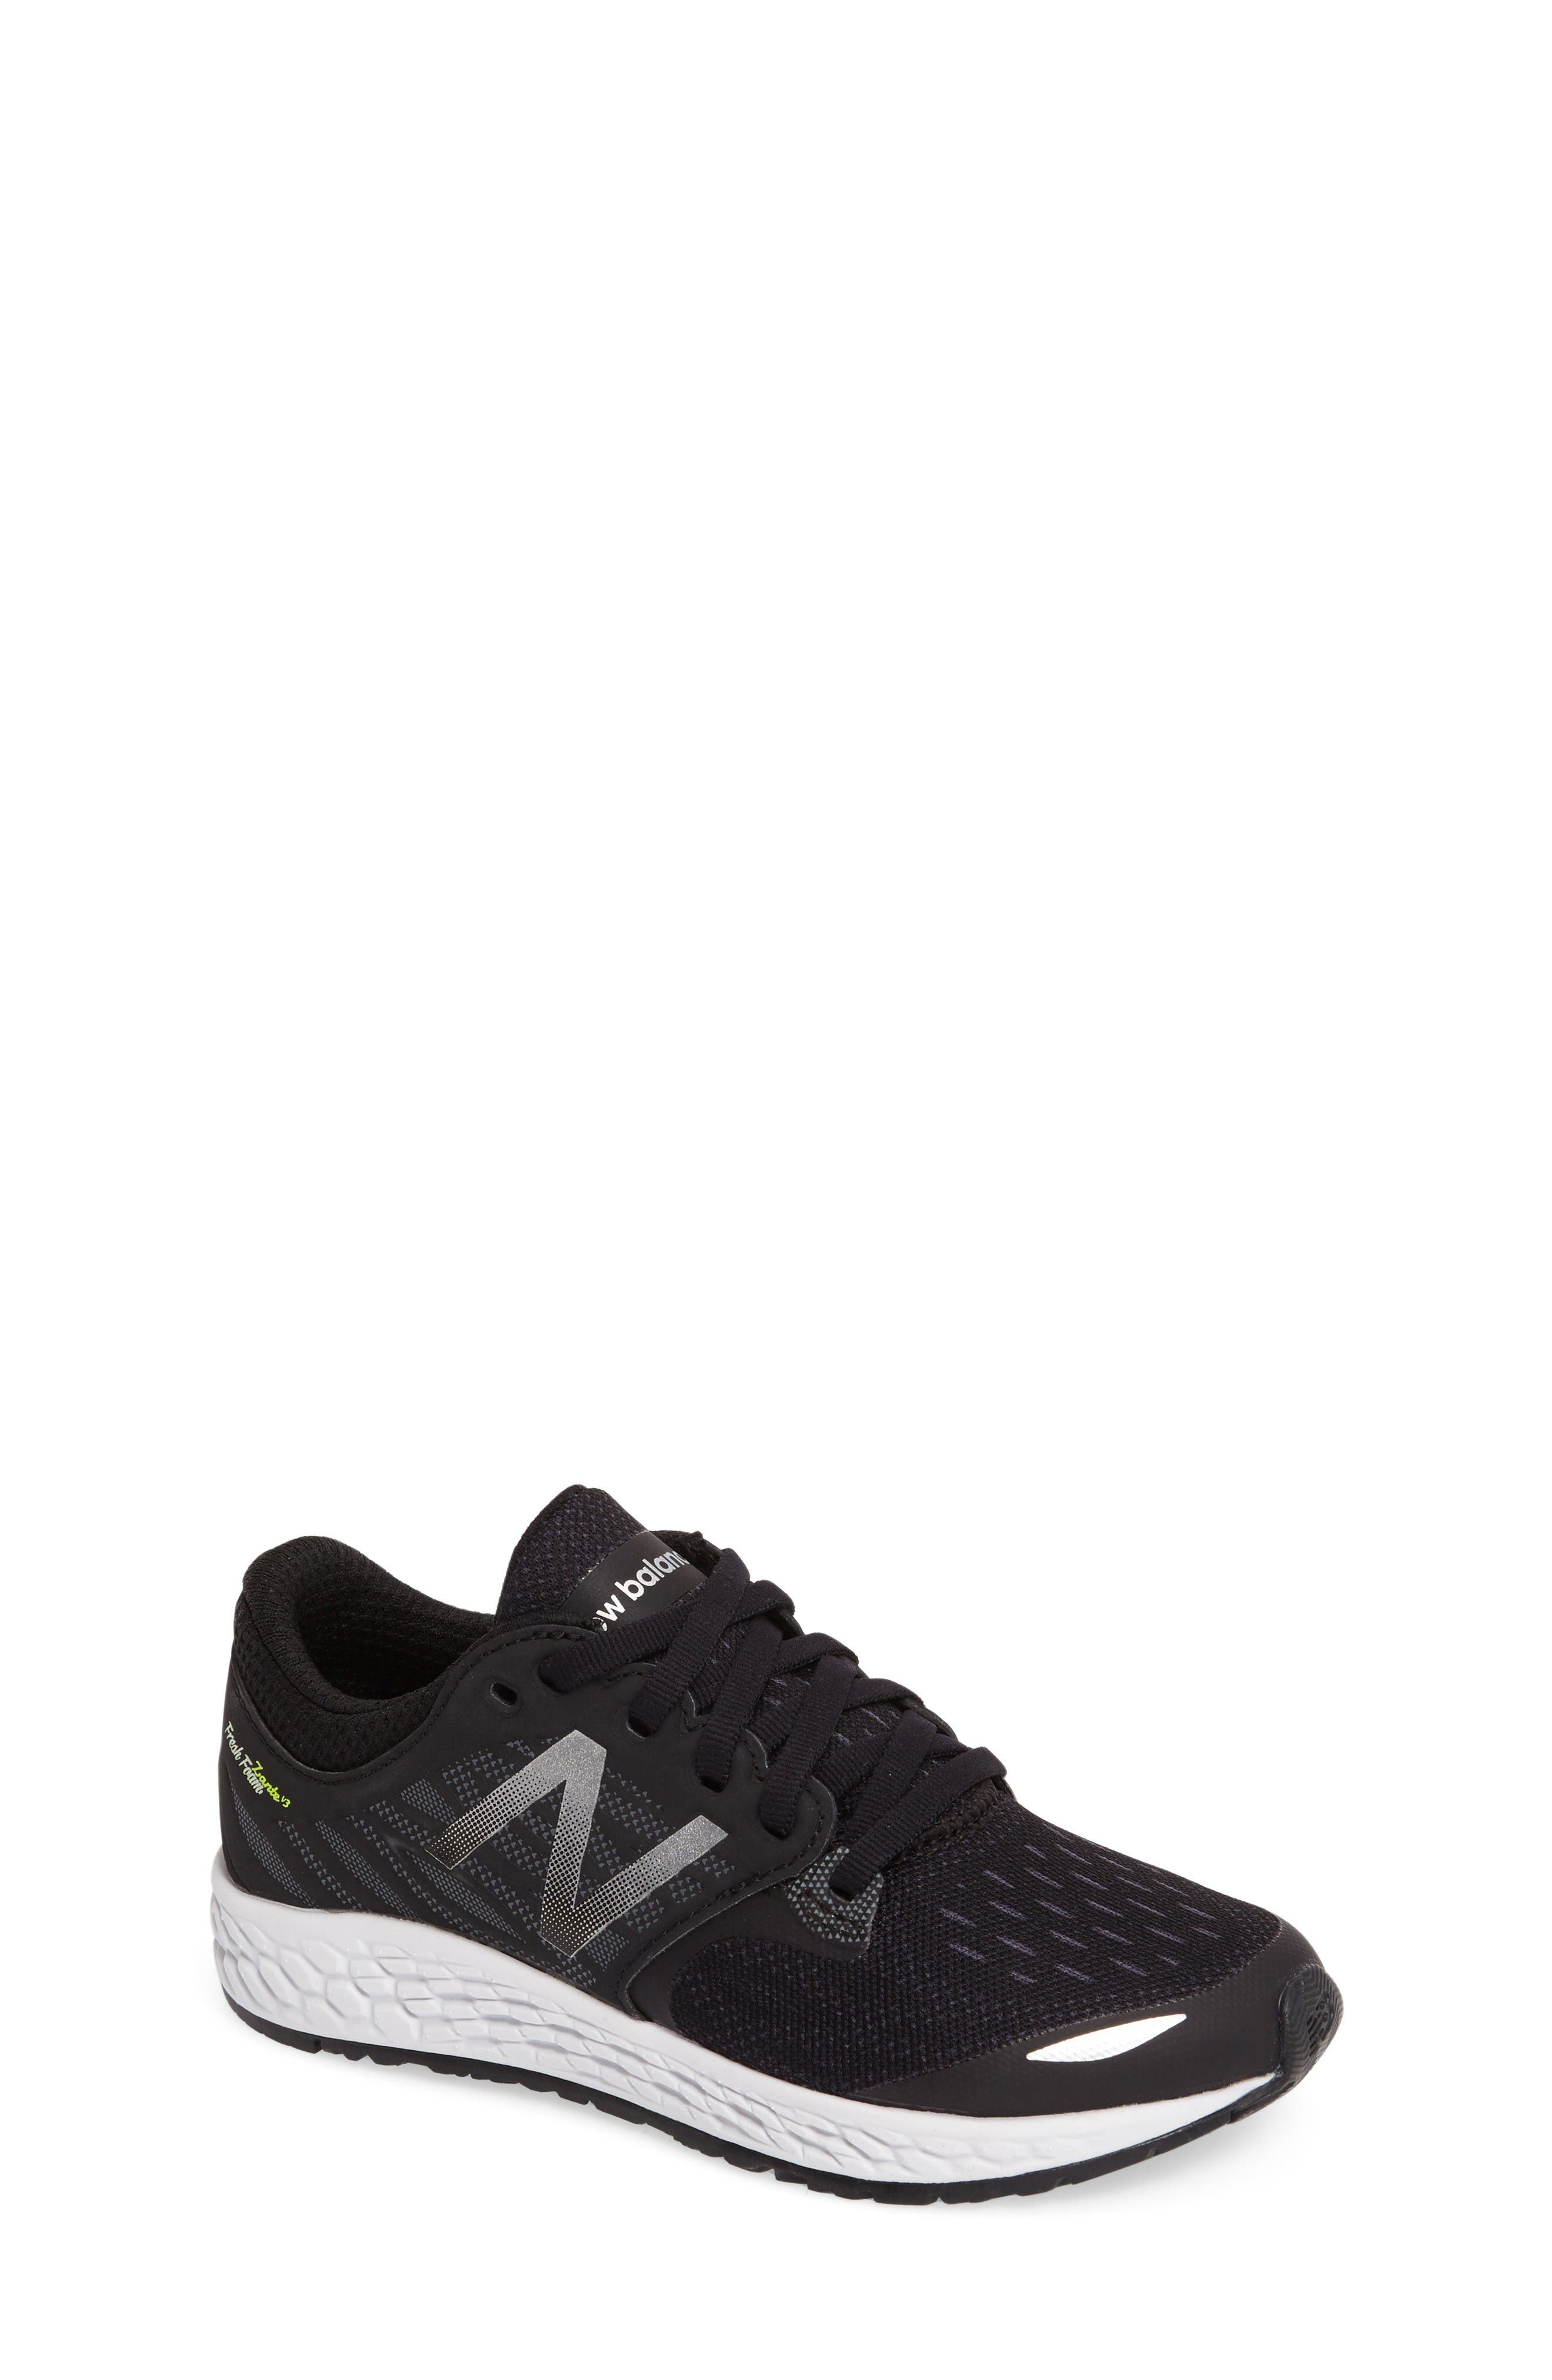 New Balance Fresh Foam Sneaker (Toddler, Little Kid & Big Kid)